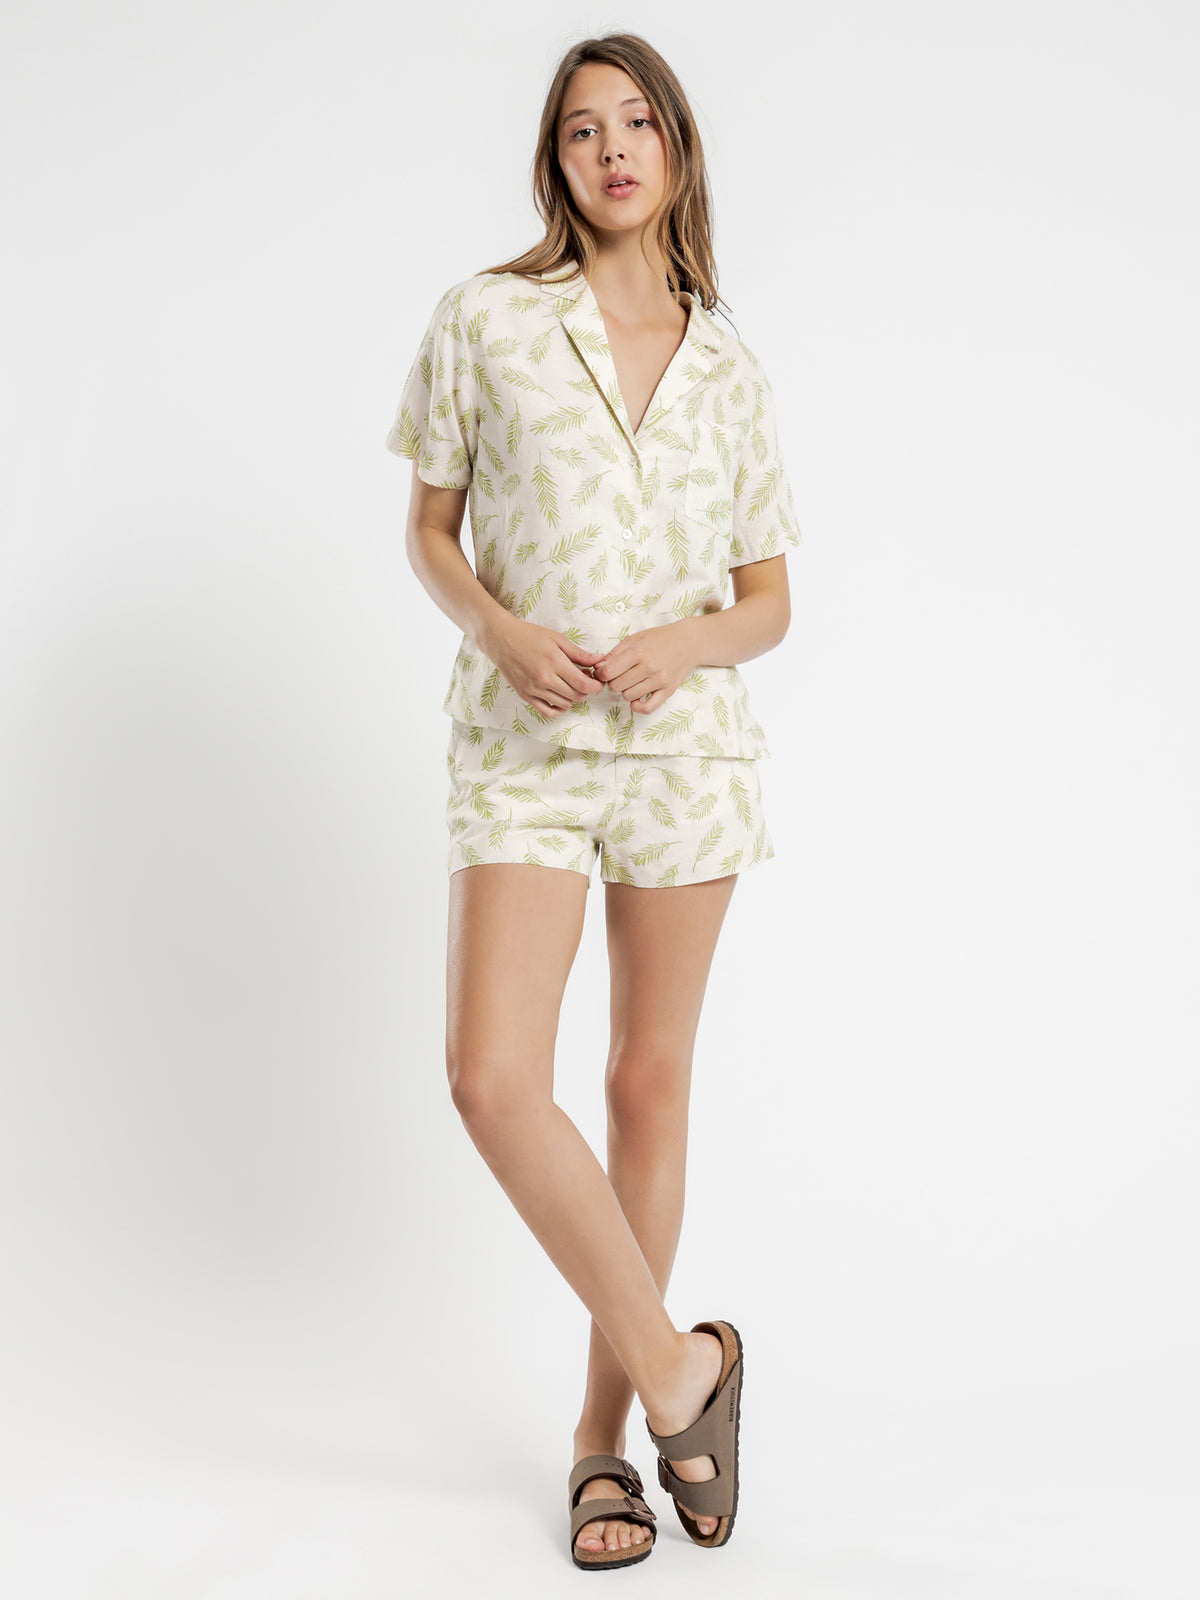 Dillion Shirt in Fern Print